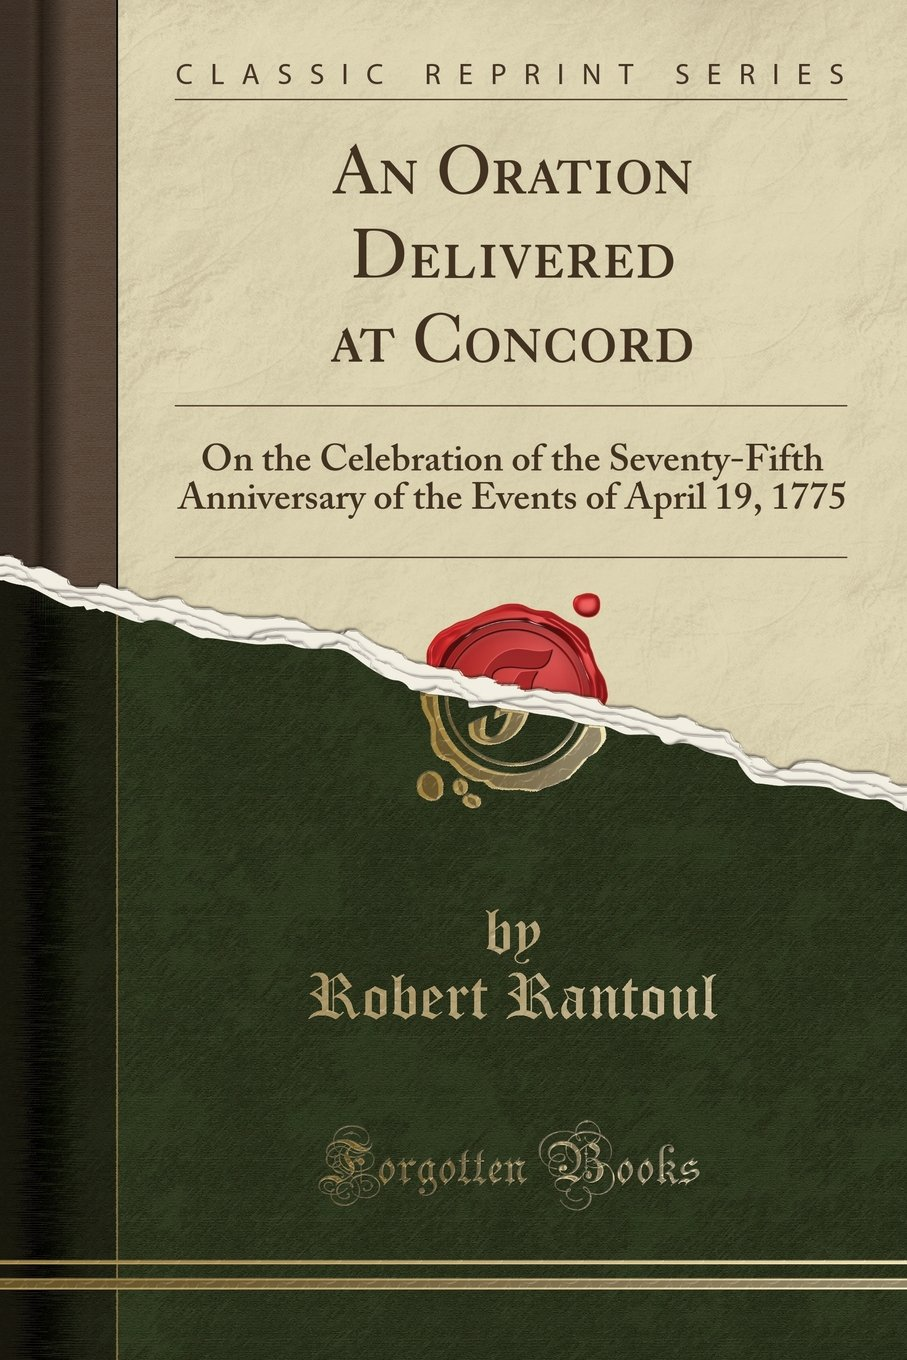 Download An Oration Delivered at Concord: On the Celebration of the Seventy-Fifth Anniversary of the Events of April 19, 1775 (Classic Reprint) PDF